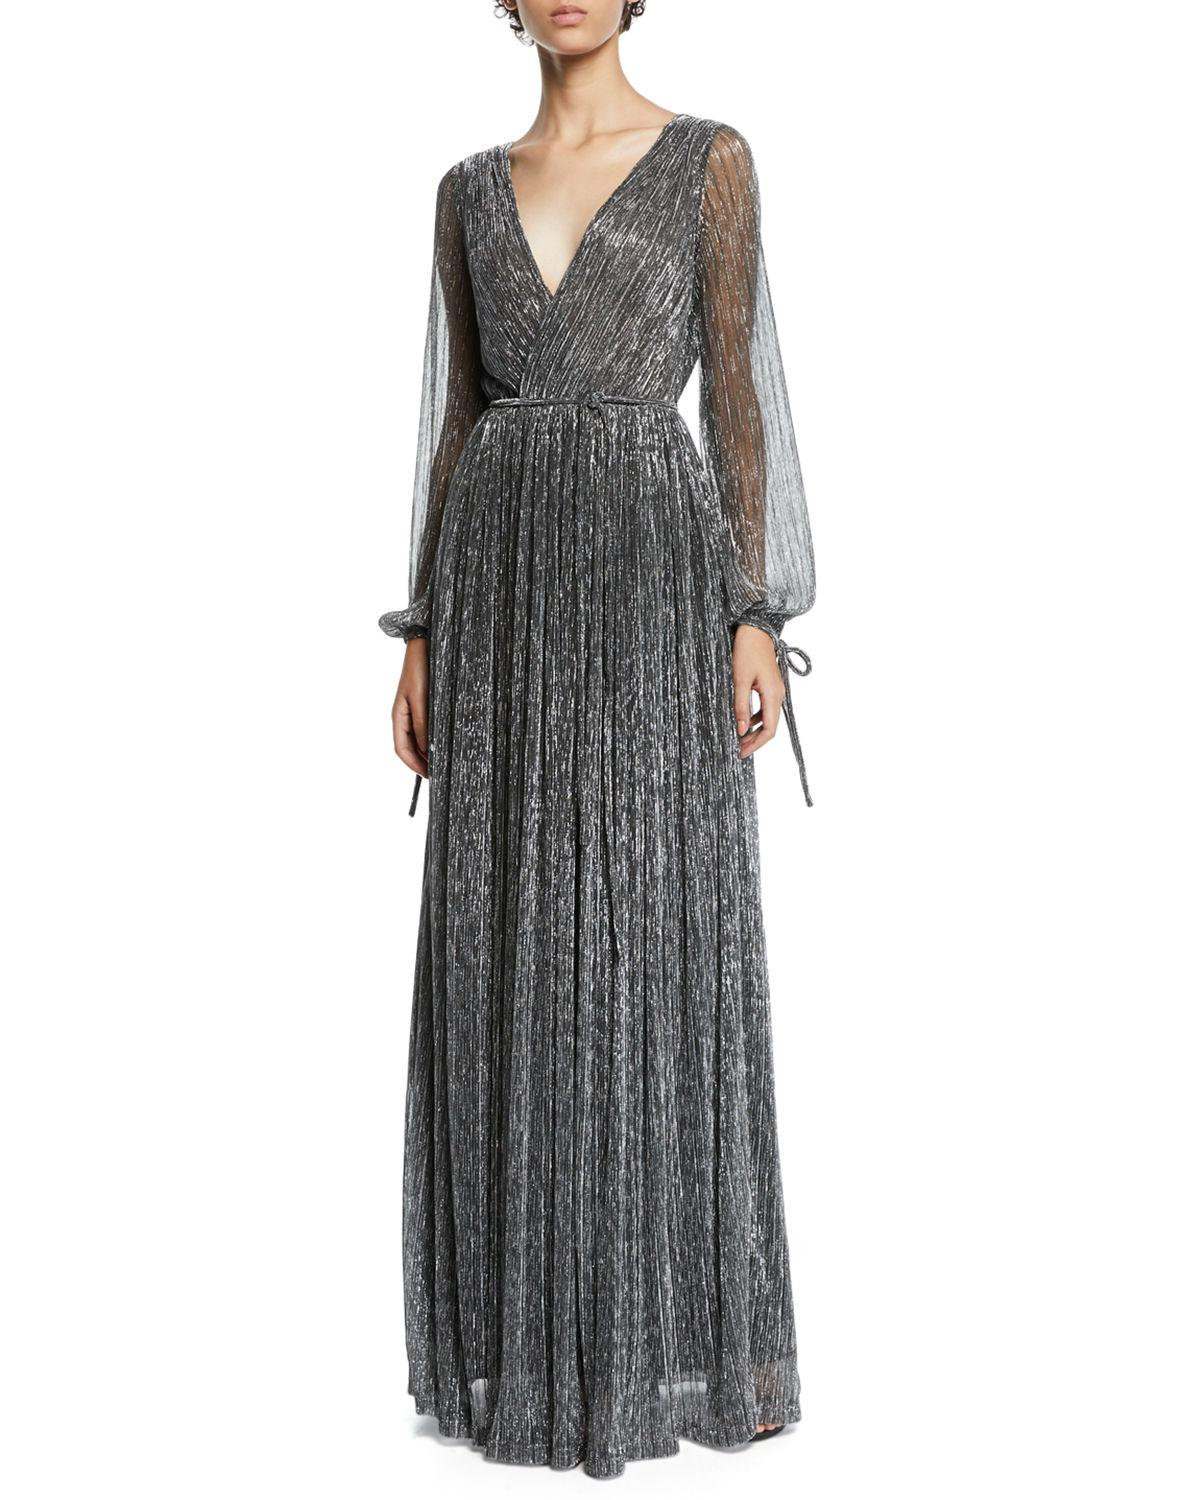 758eec609d71 Zac Zac Posen Christina Metallic Pleated Long-Sleeve Wrap Gown ...